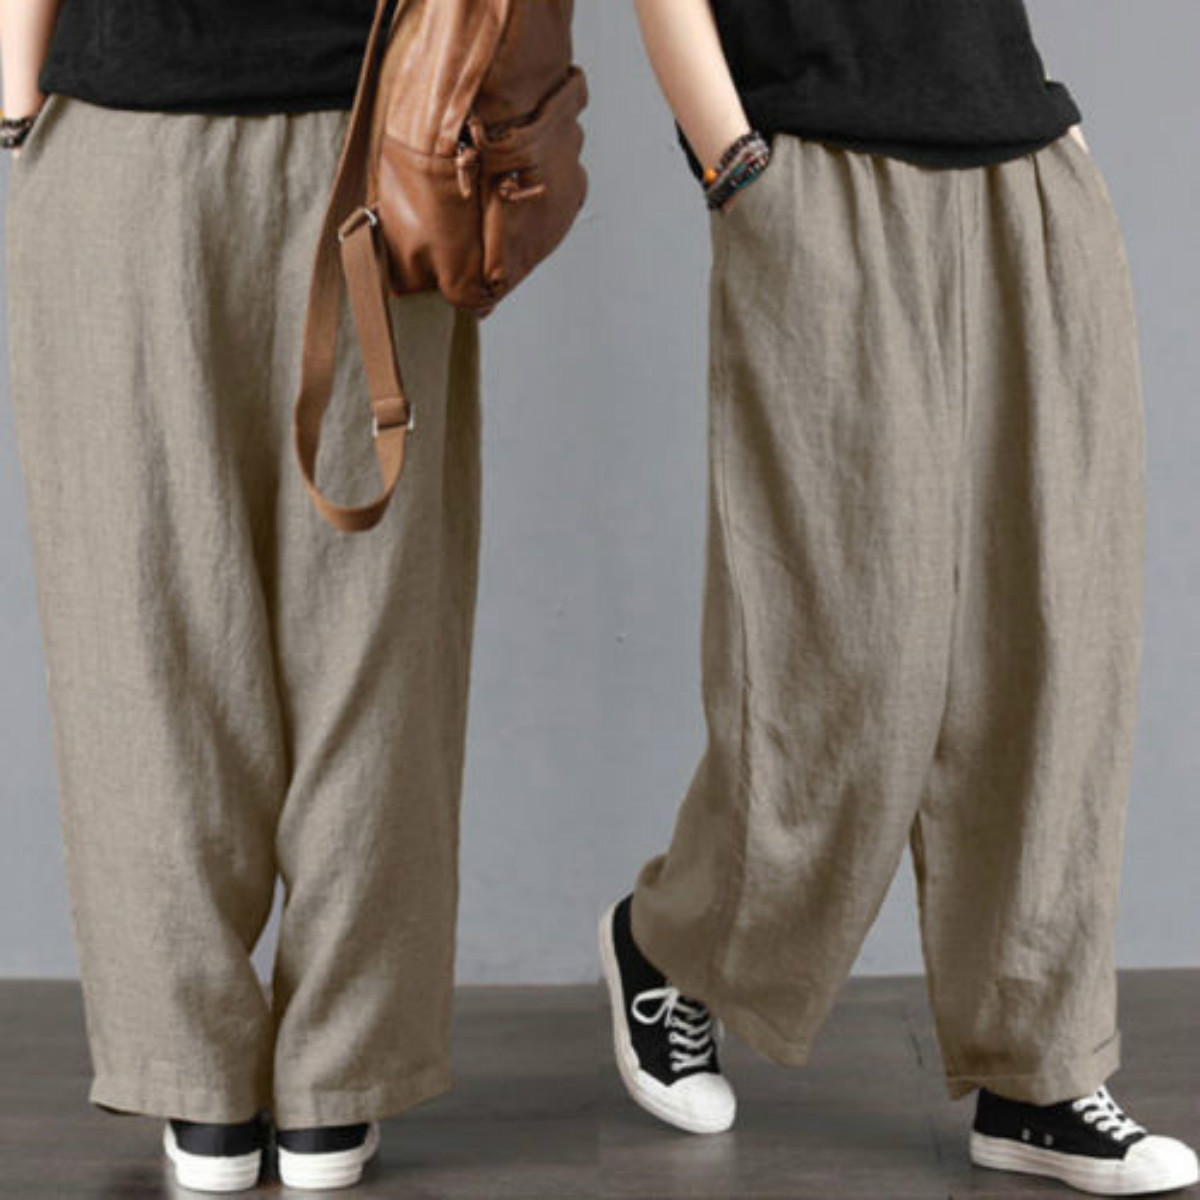 2383ee54dfa4b Wide Leg Pants New Brand Men Loose Wide Leg Pants Cotton& Linen Casual  Bloomers Trousers Harem Plus Size ~ Free Delivery July 2019